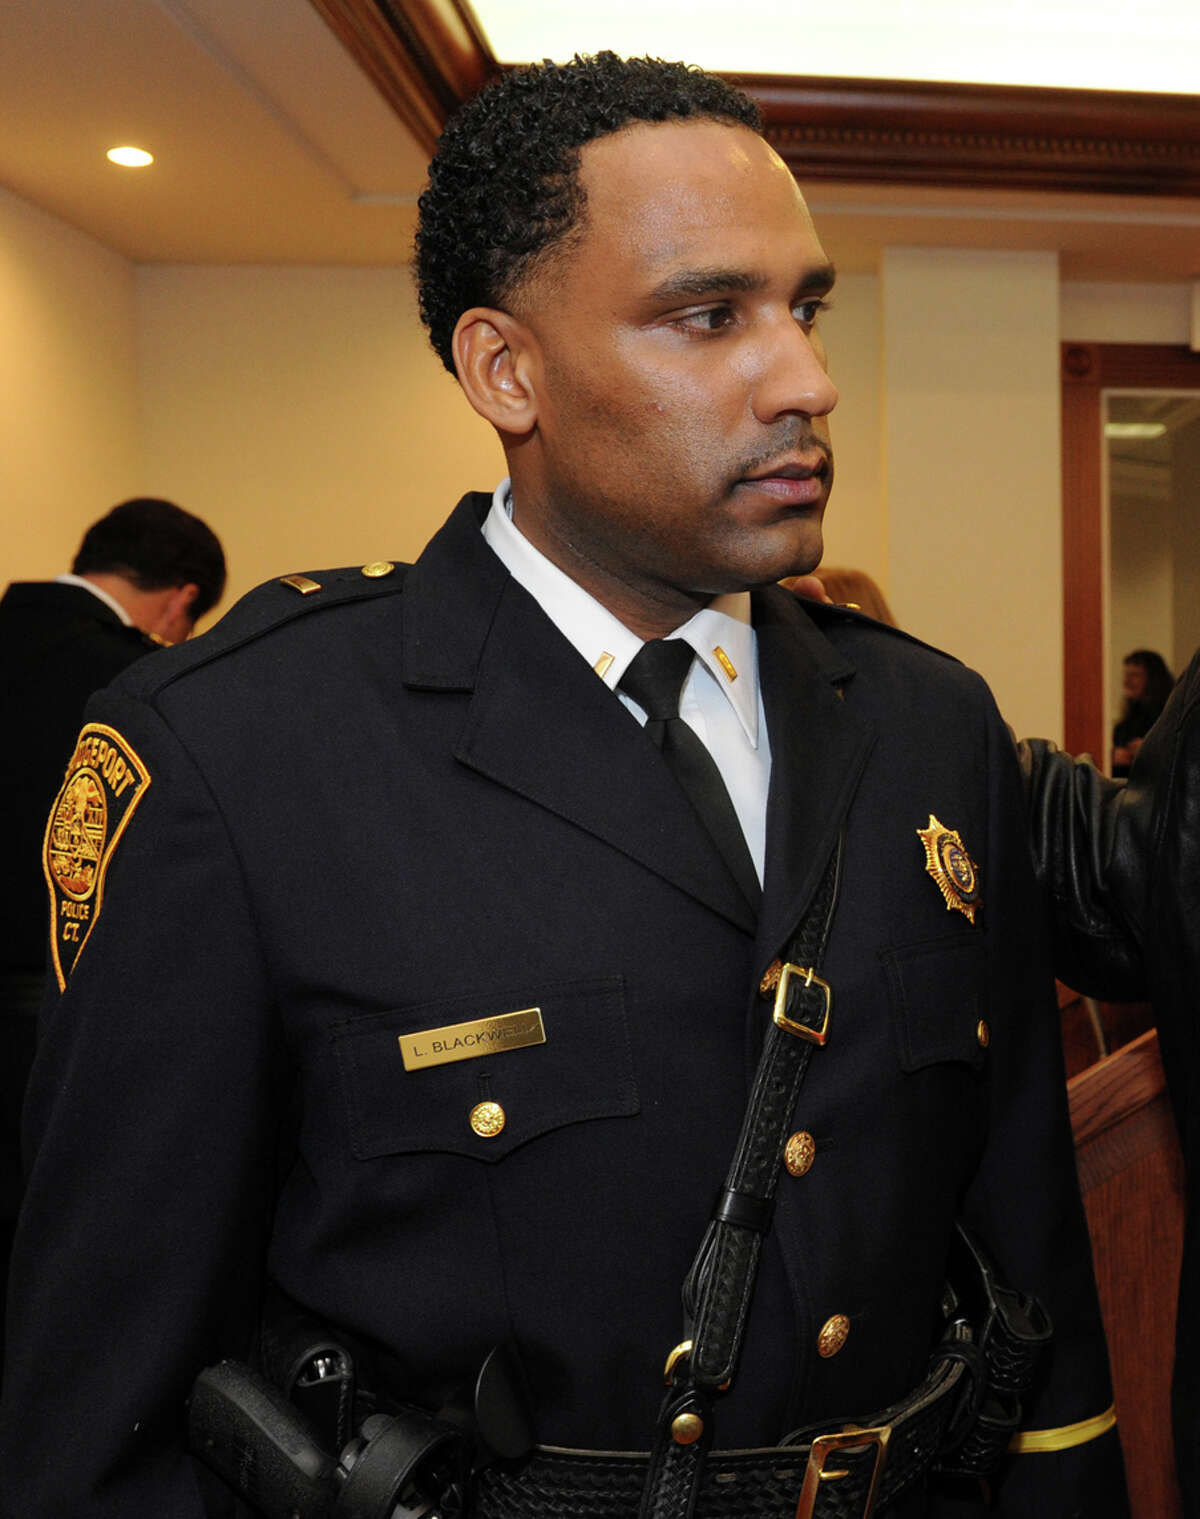 Bridgeport Police Lt. Lonnie Blackwell.